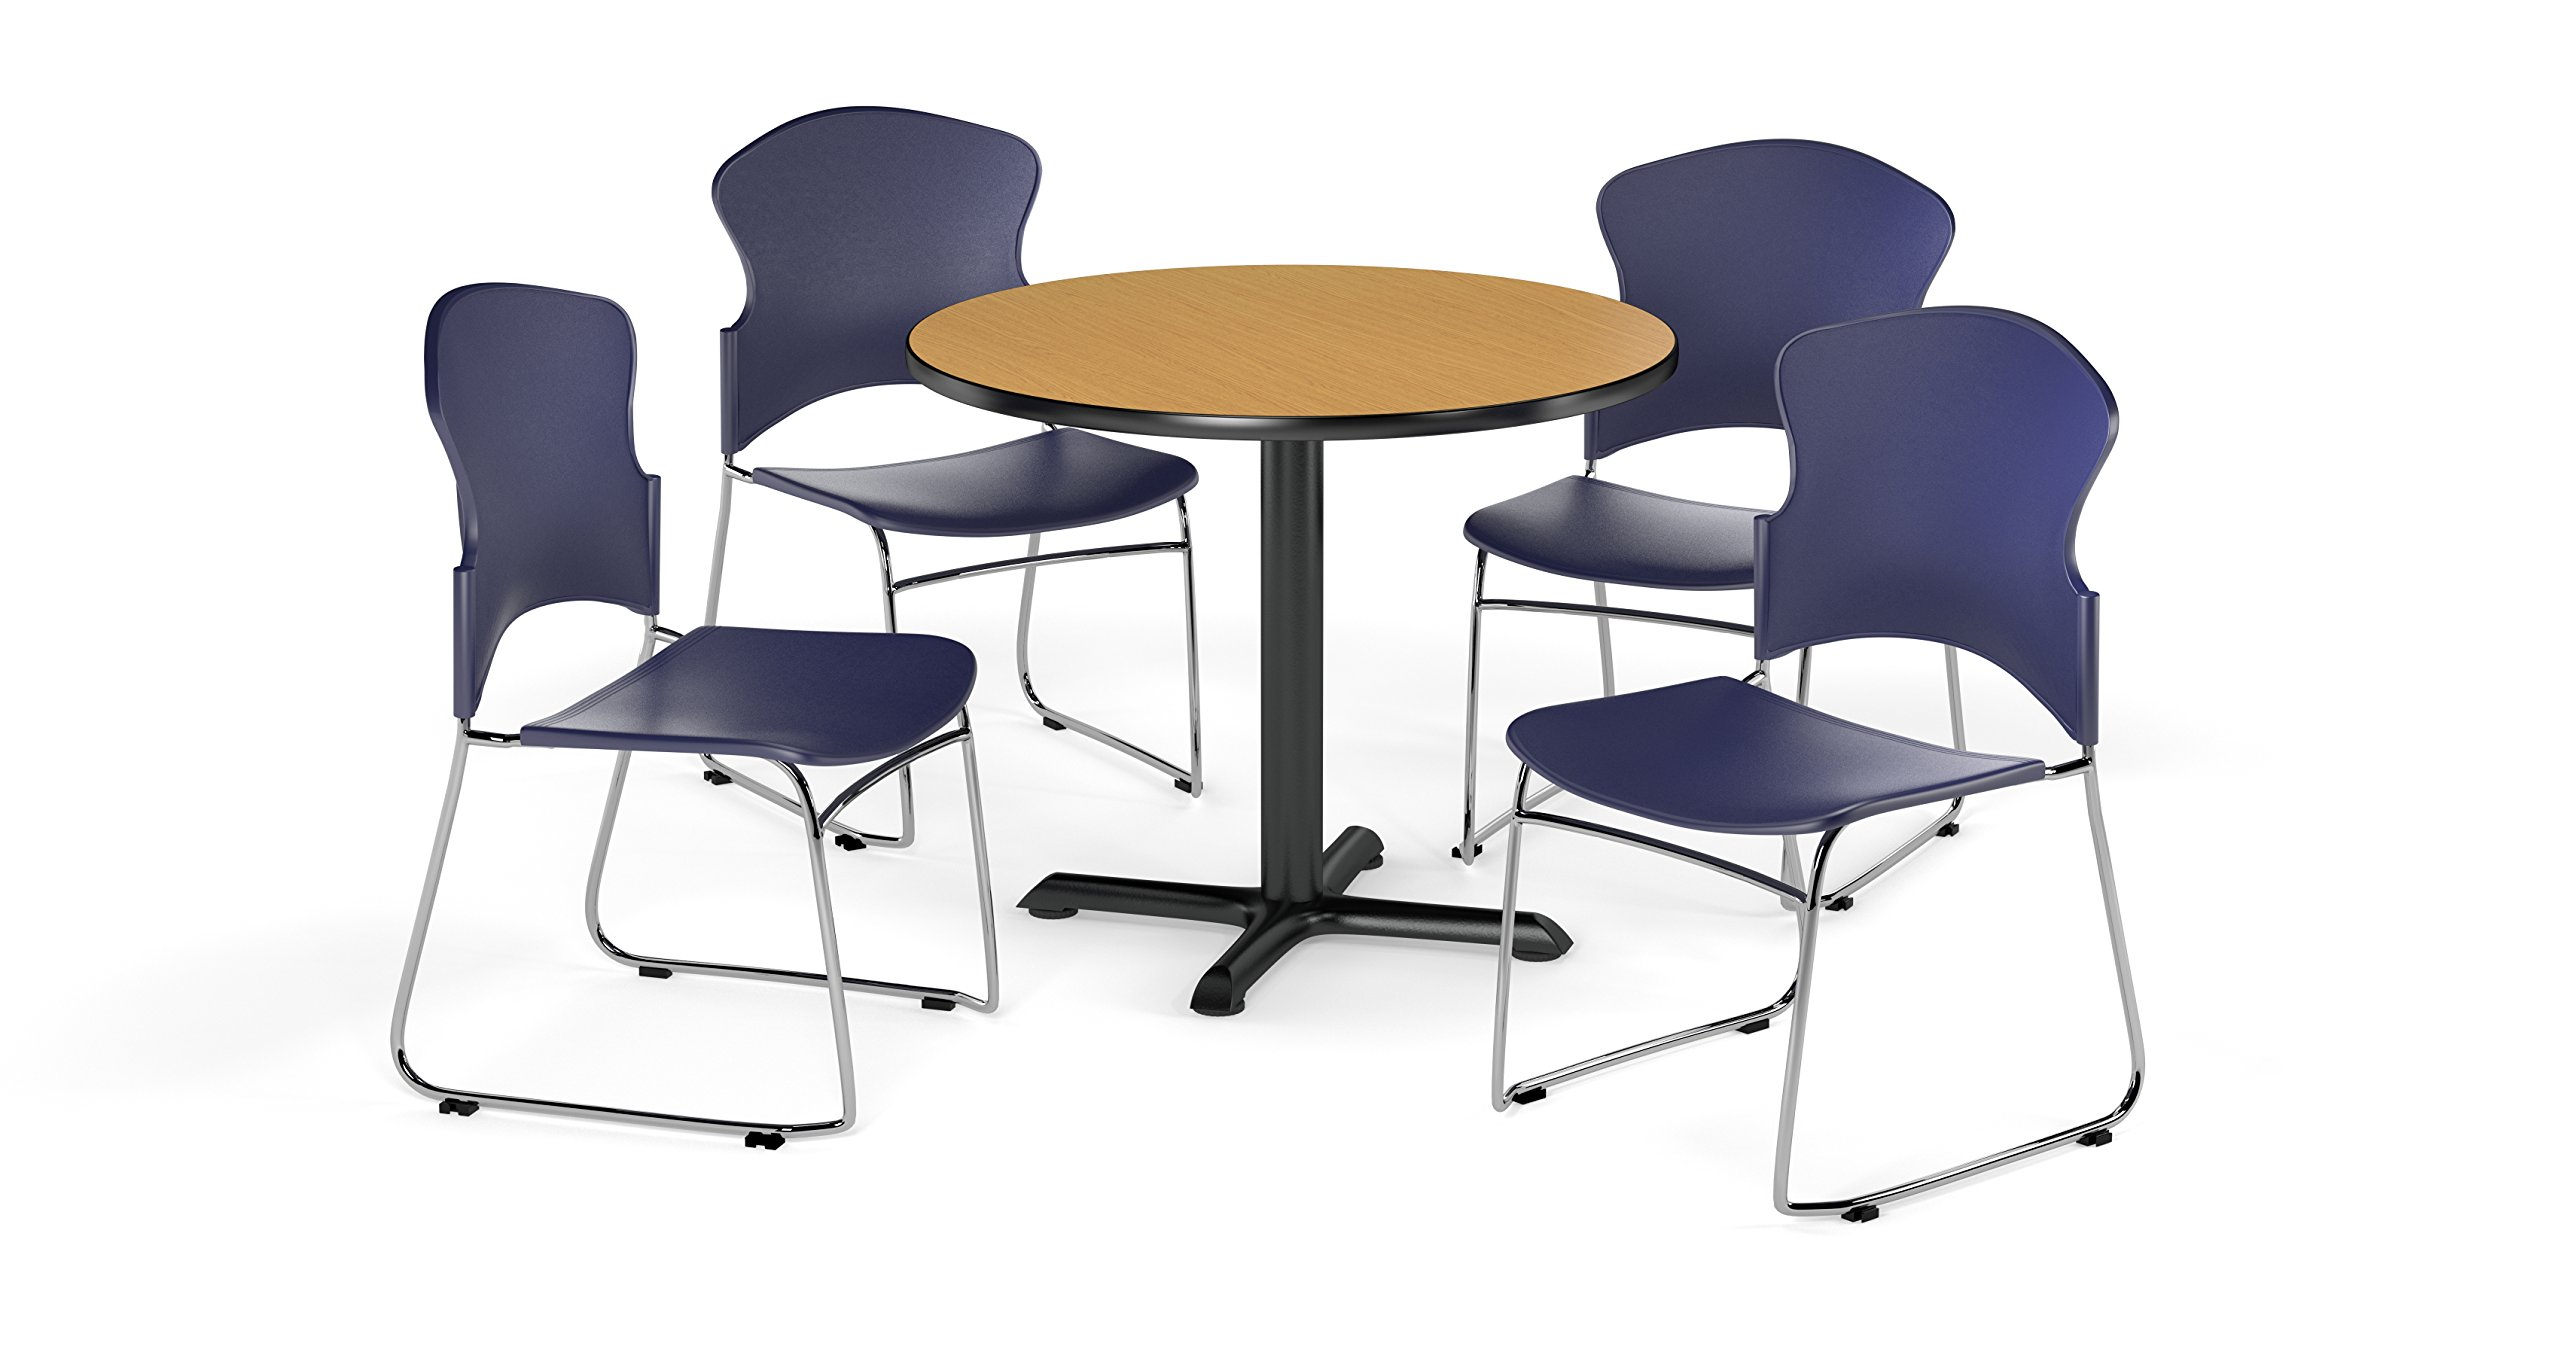 OFM PKG-BRK-033-0016 Breakroom Package, Oak Table/Navy Chair